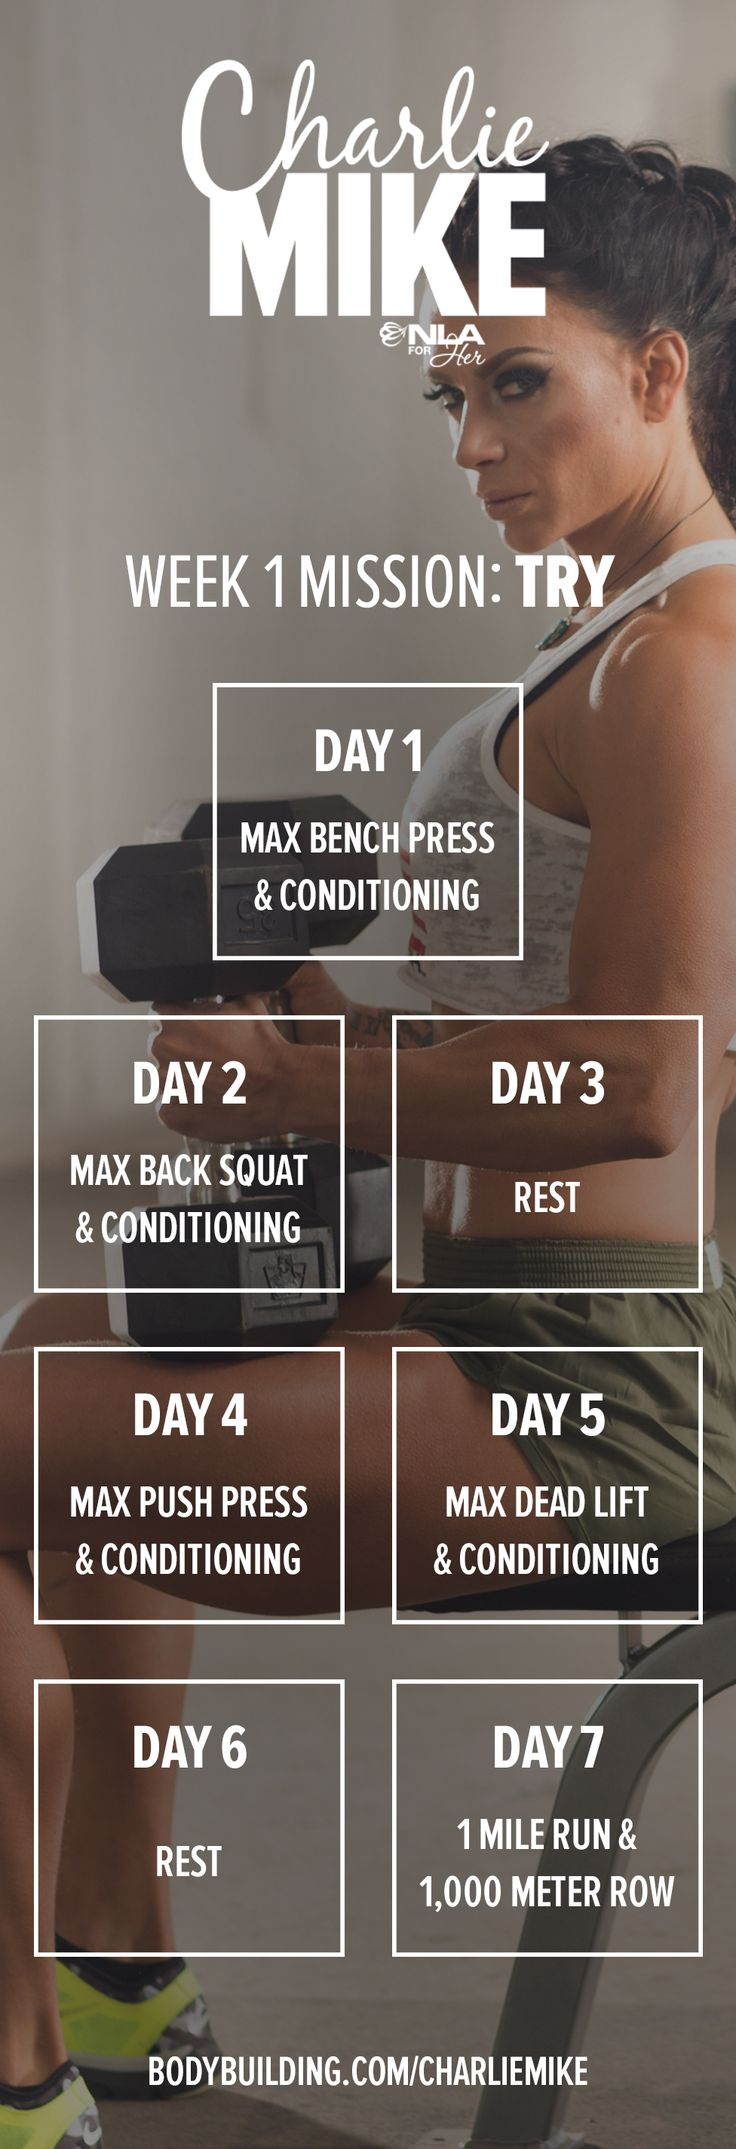 ASHLEY HORNER'S CHARLIE MIKE: 6-WEEK FITNESS PLAN.  Welcome to your first day of Charlie Mike! Your mission this week can be summed up in a single word: TRY.